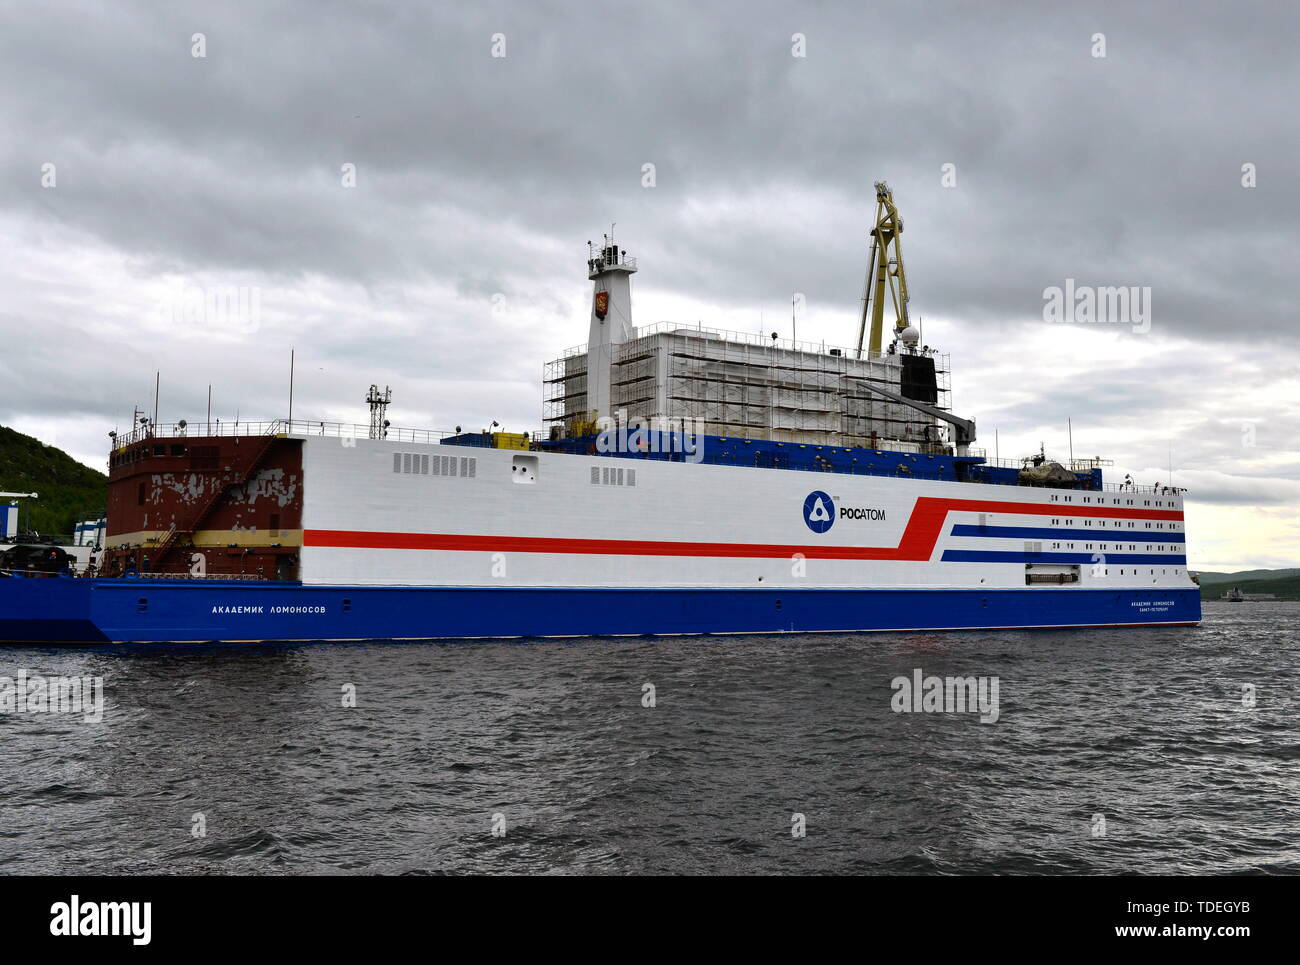 MURMANSK, RUSSIA - JUNE 14, 2019: A view of Akademik Lomonosov, a floating nuclear power unit, its hull painted at the Atomflot base; being part of a floating nuclear power station, the vessel belongs to a new class of energy sources based on Russian nuclear shipbuilding technologies. Lev Fedoseyev/TASS - Stock Image